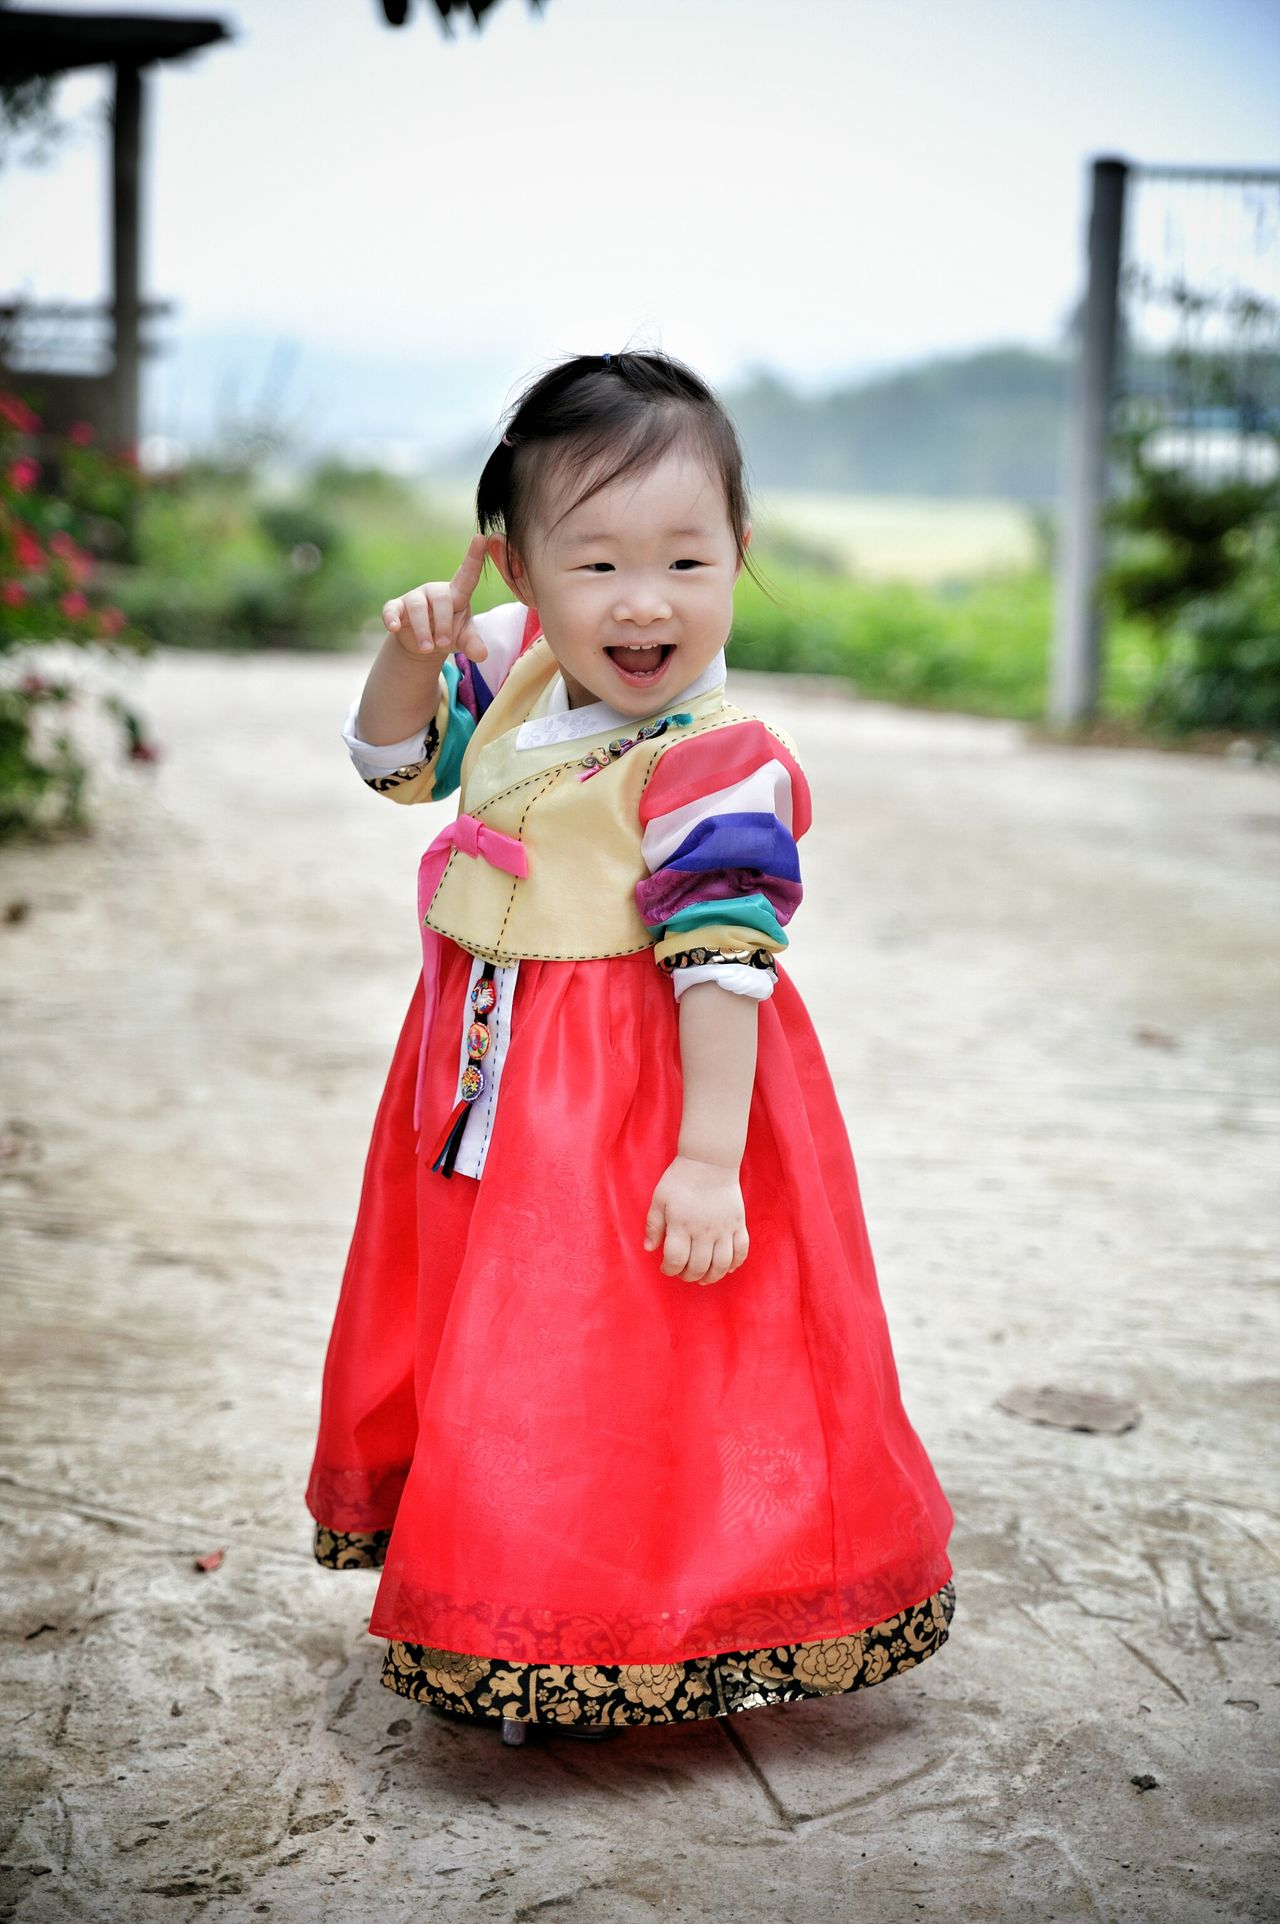 Baby Baby ❤ Babygirl Cute♡ Cute Baby Trditional Dress Hanbok Hanbokkorea Hanbokgirl Chuseok Thanksgiving Feeling Thankful Feeling Good Feeling Inspired Cute Innocence Lifestyles Person Focus On Foreground Girls Red Holding Portrait People TakeoverContrast